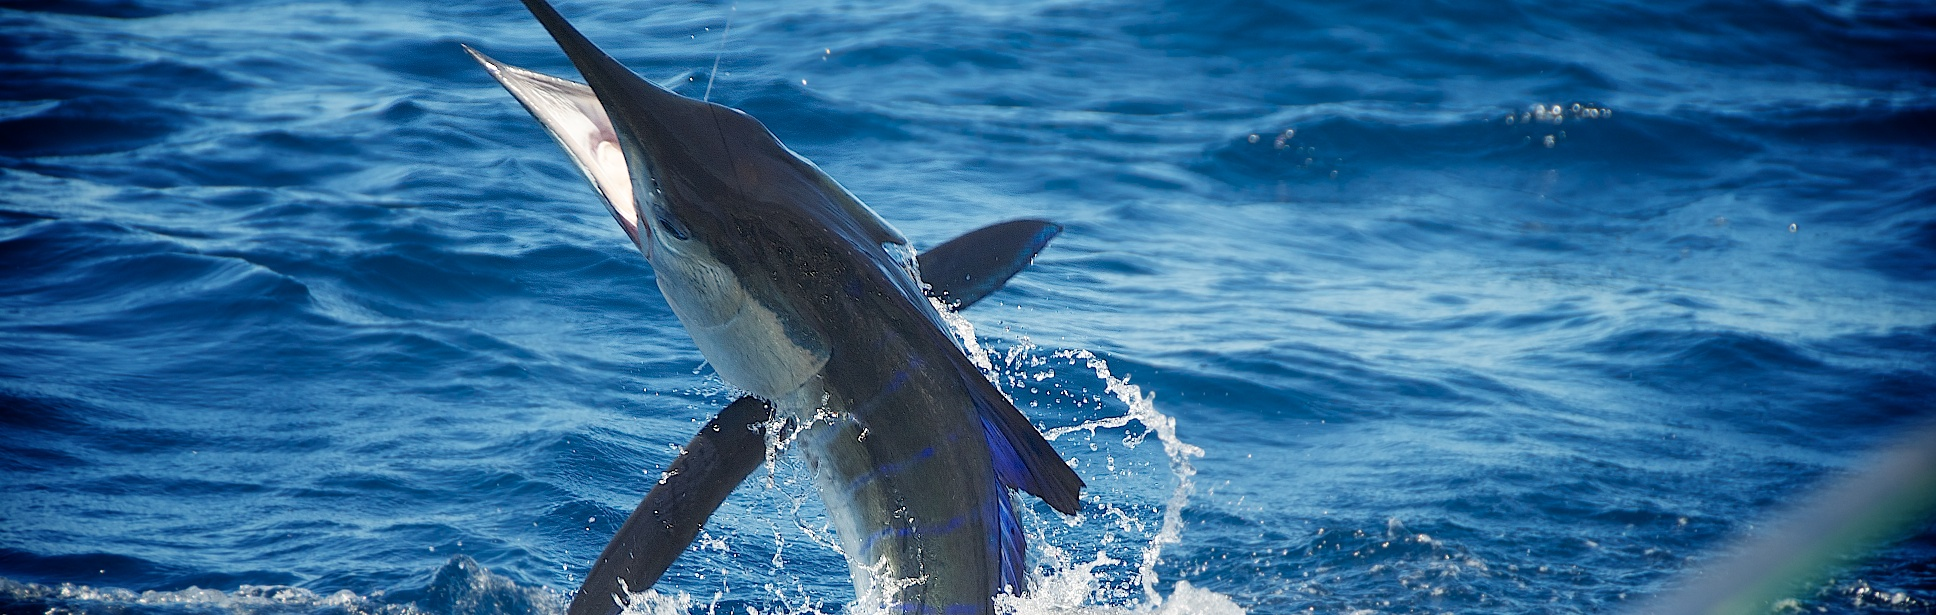 Marlin Reduced4 Catch Fish Cabo